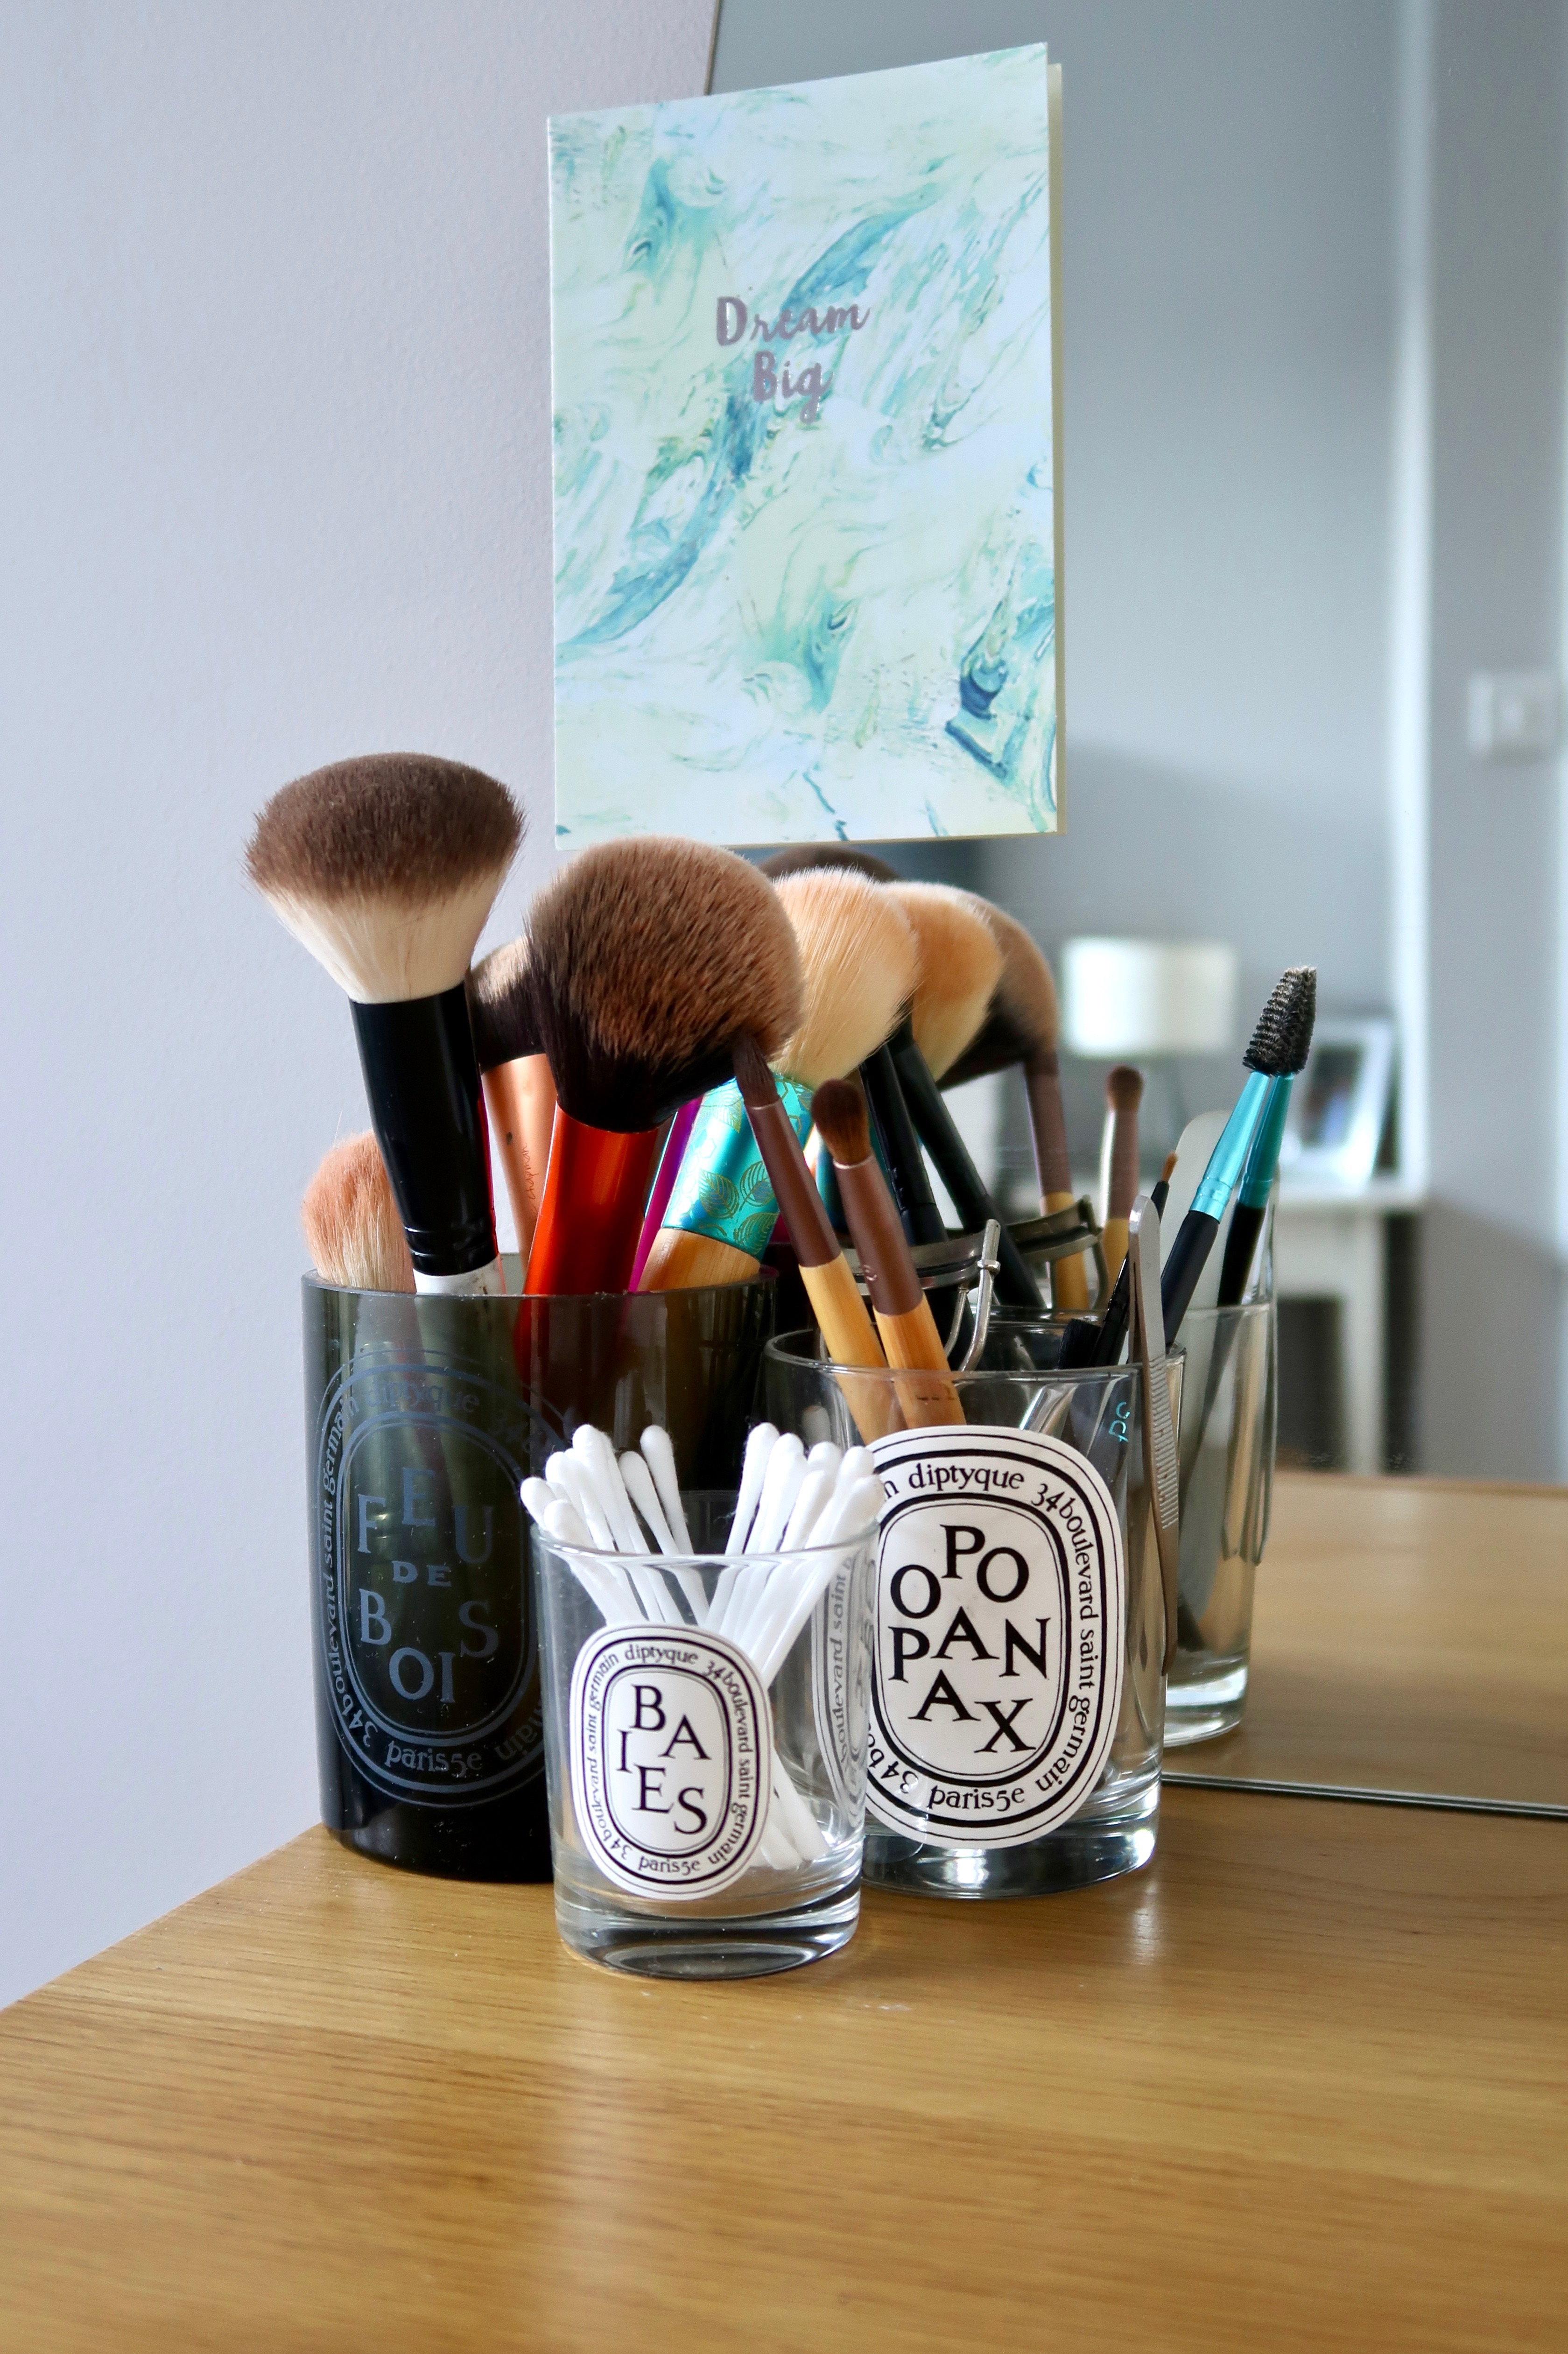 Diptyque makeup brush holders